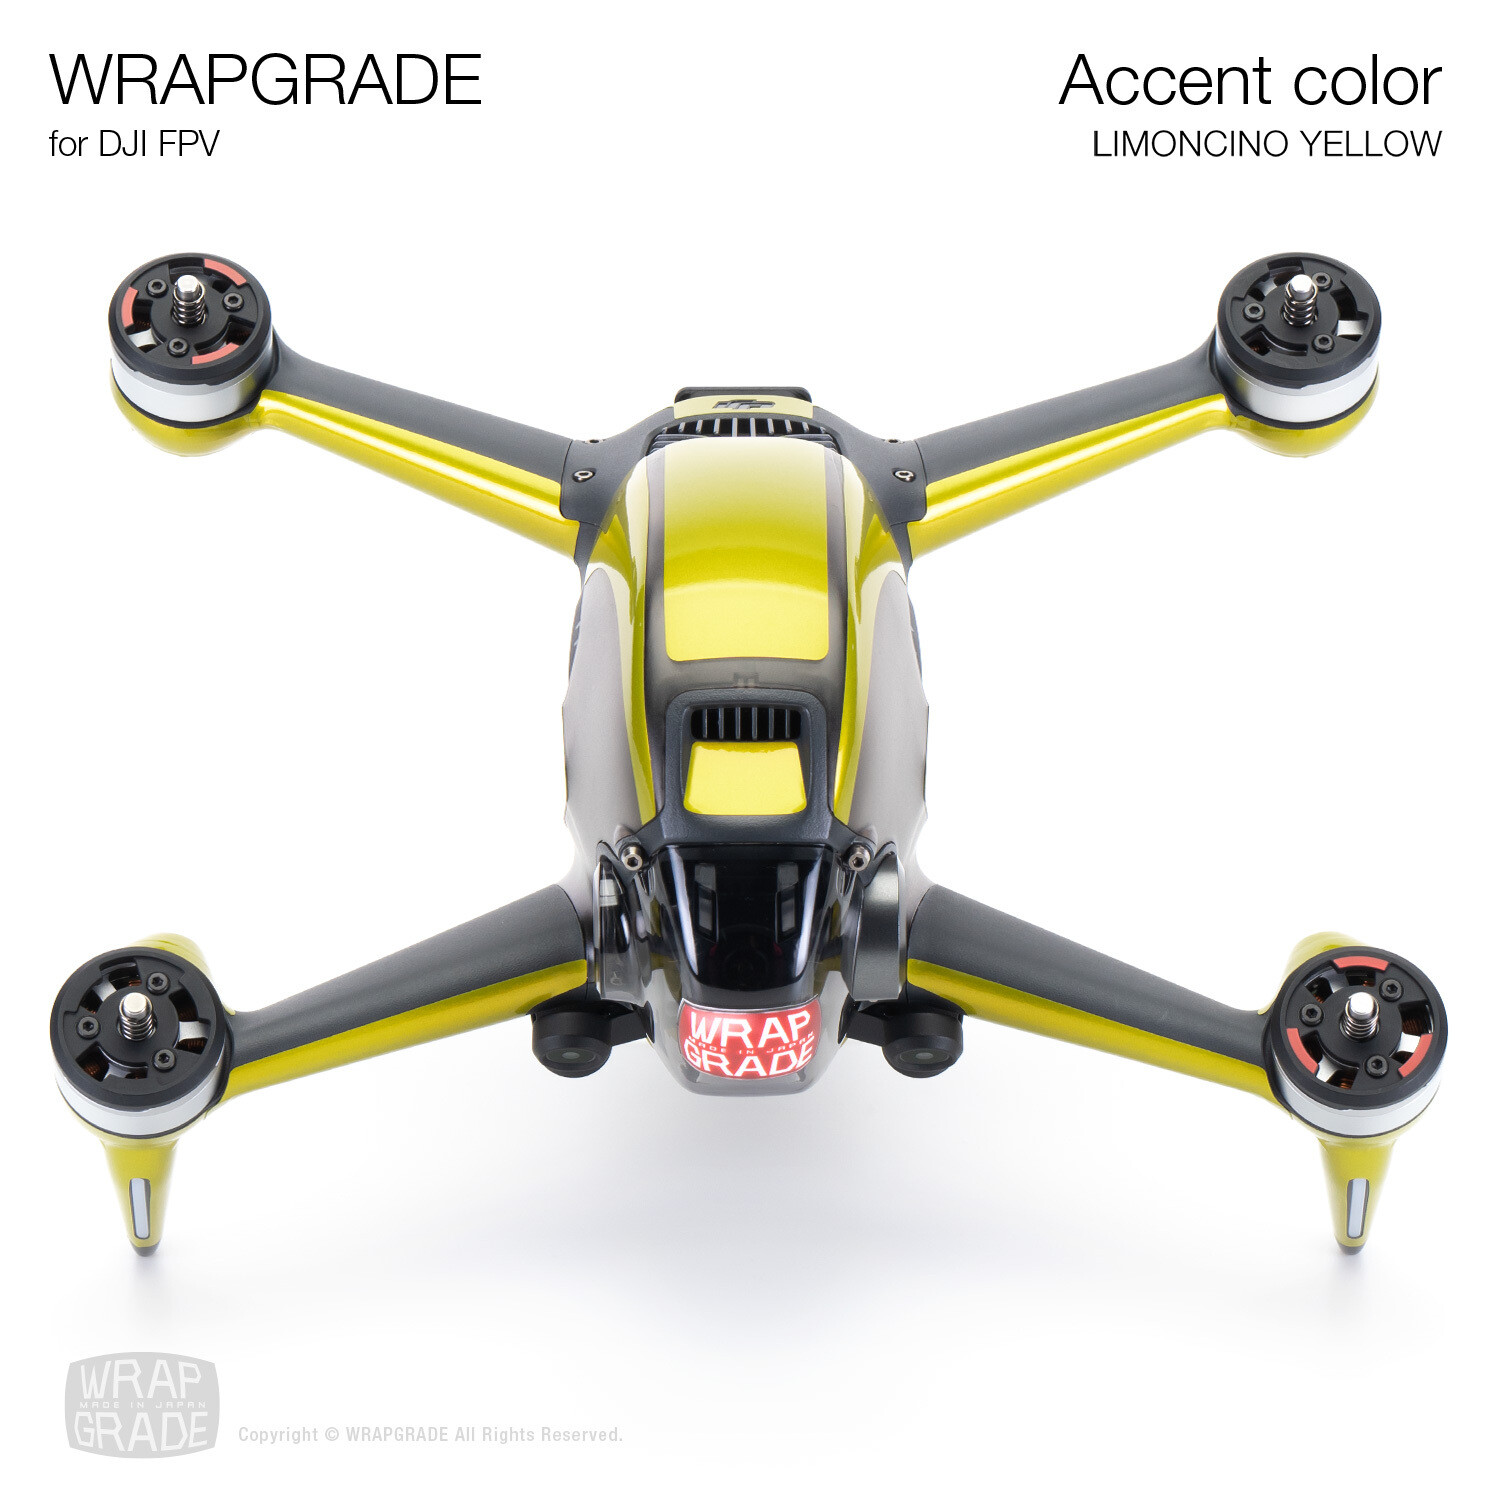 WRAPGRADE for DJI FPV | Accent color (LIMONCINO YELLOW)